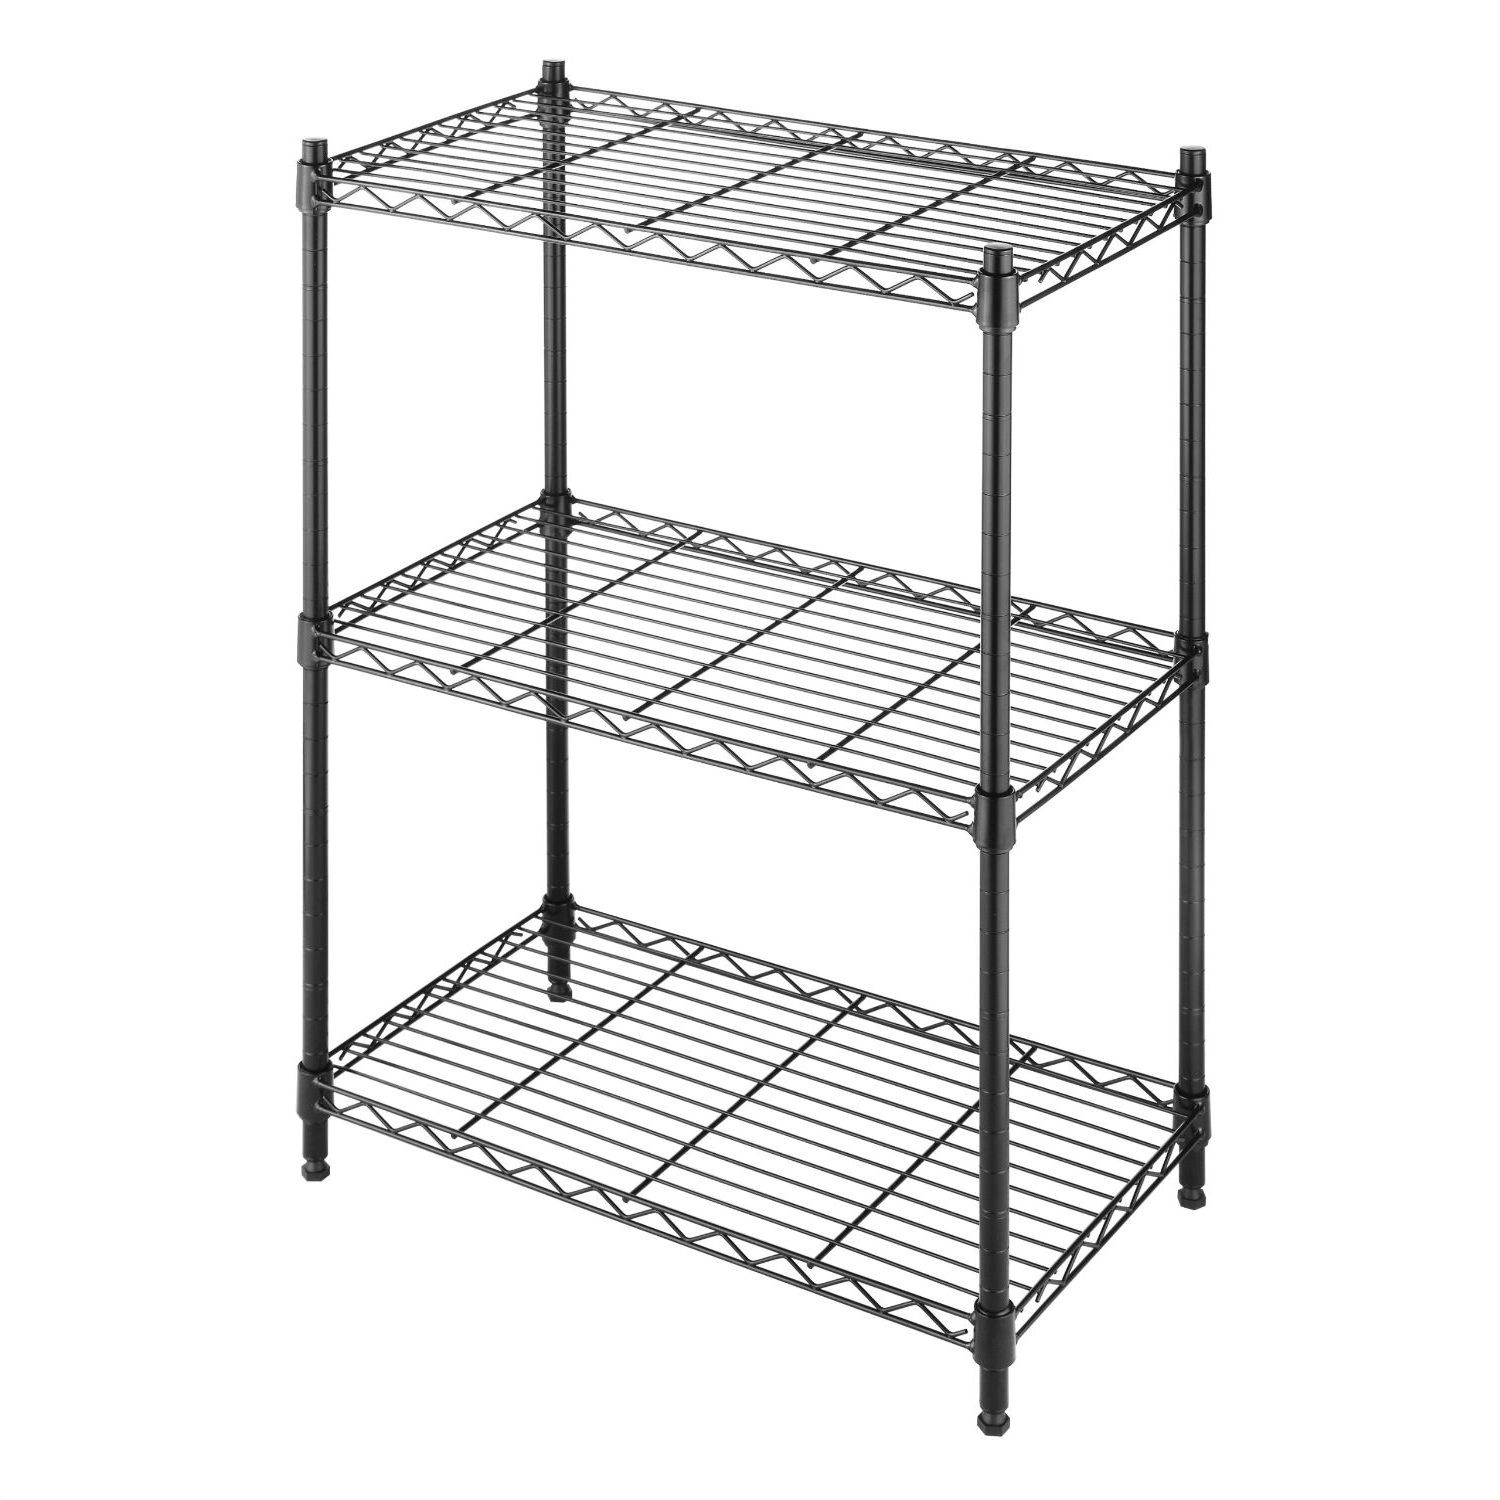 Small 3-Shelf Storage Rack Shelving Unit in Black Metal ...